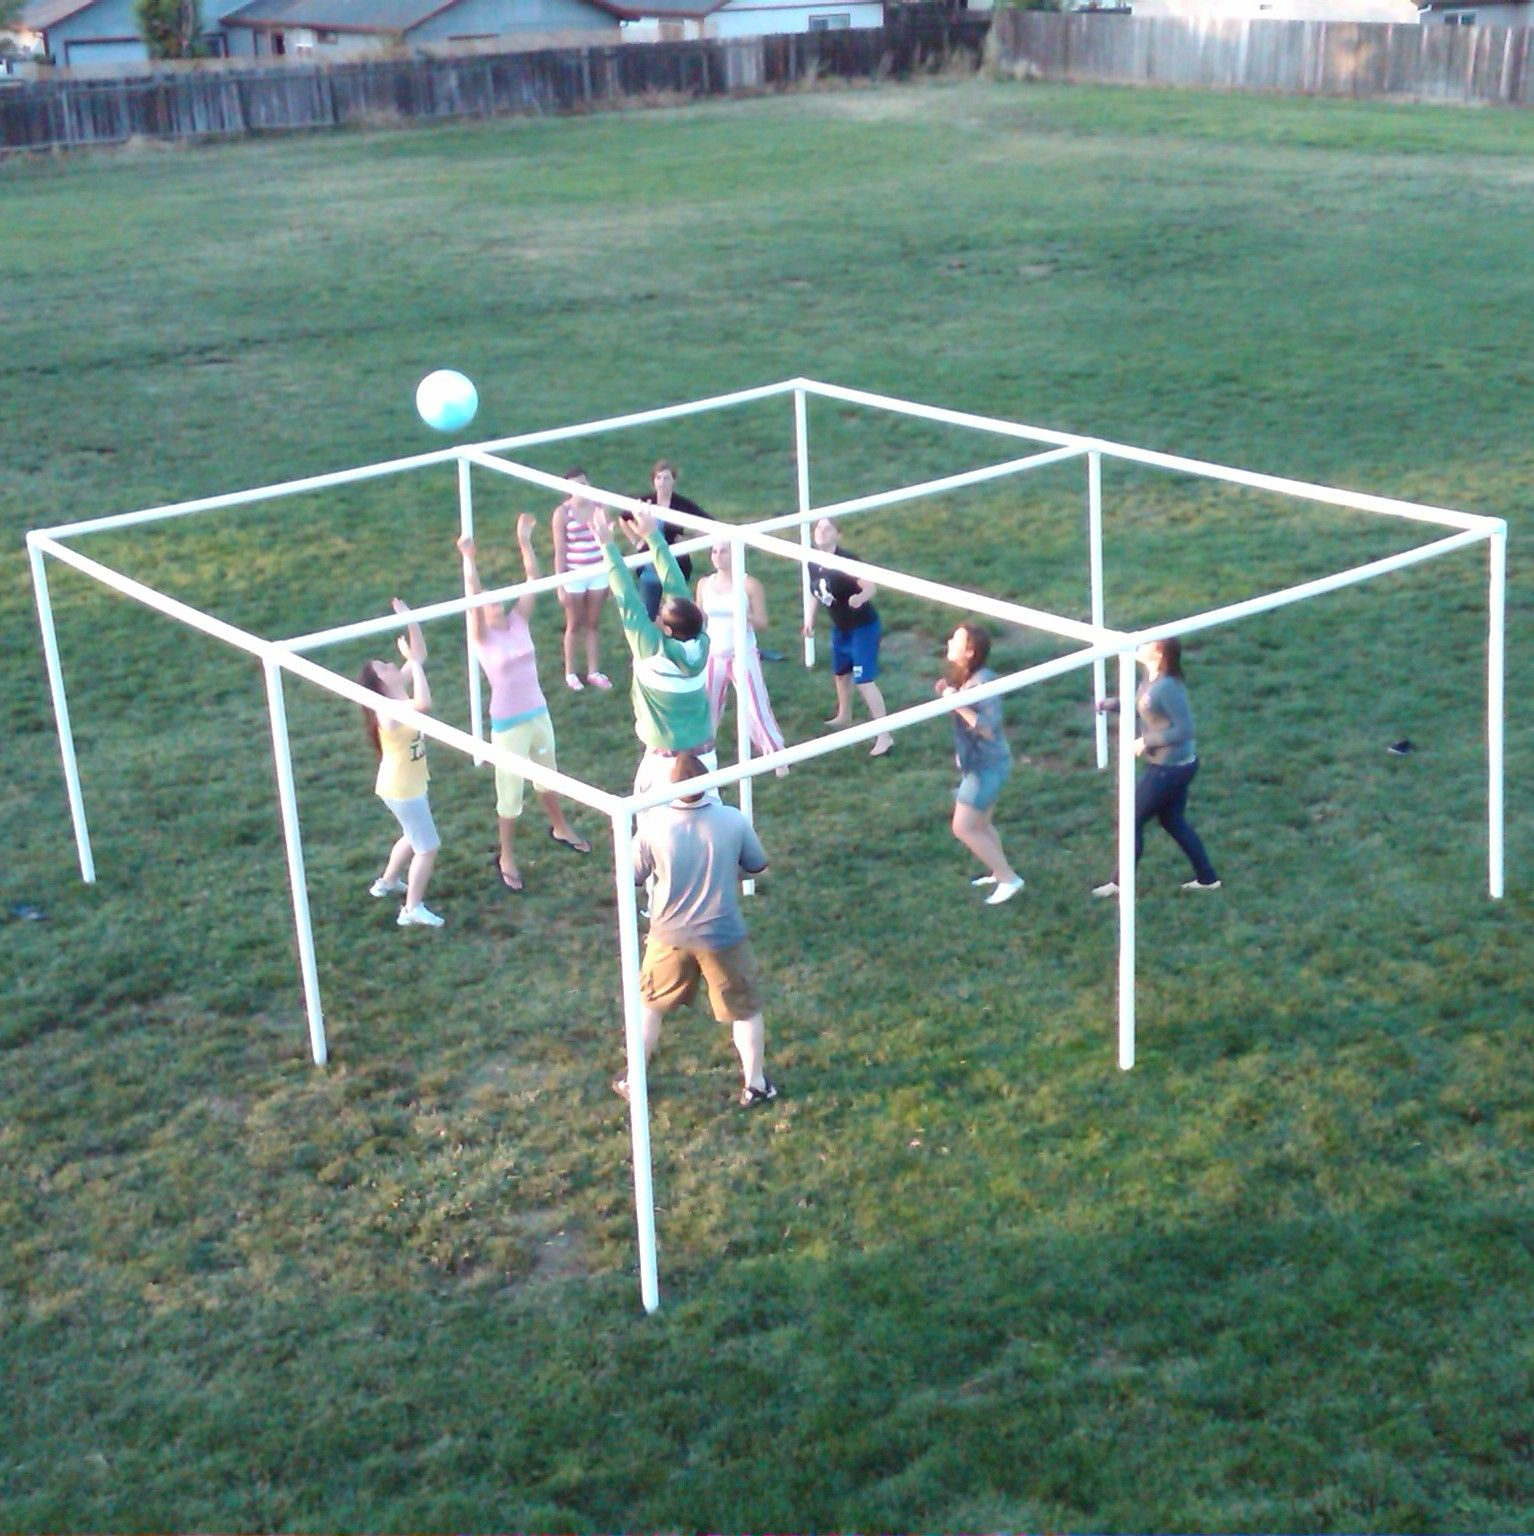 Volley Square In 2020 Youth Group Games Youth Games Backyard Games